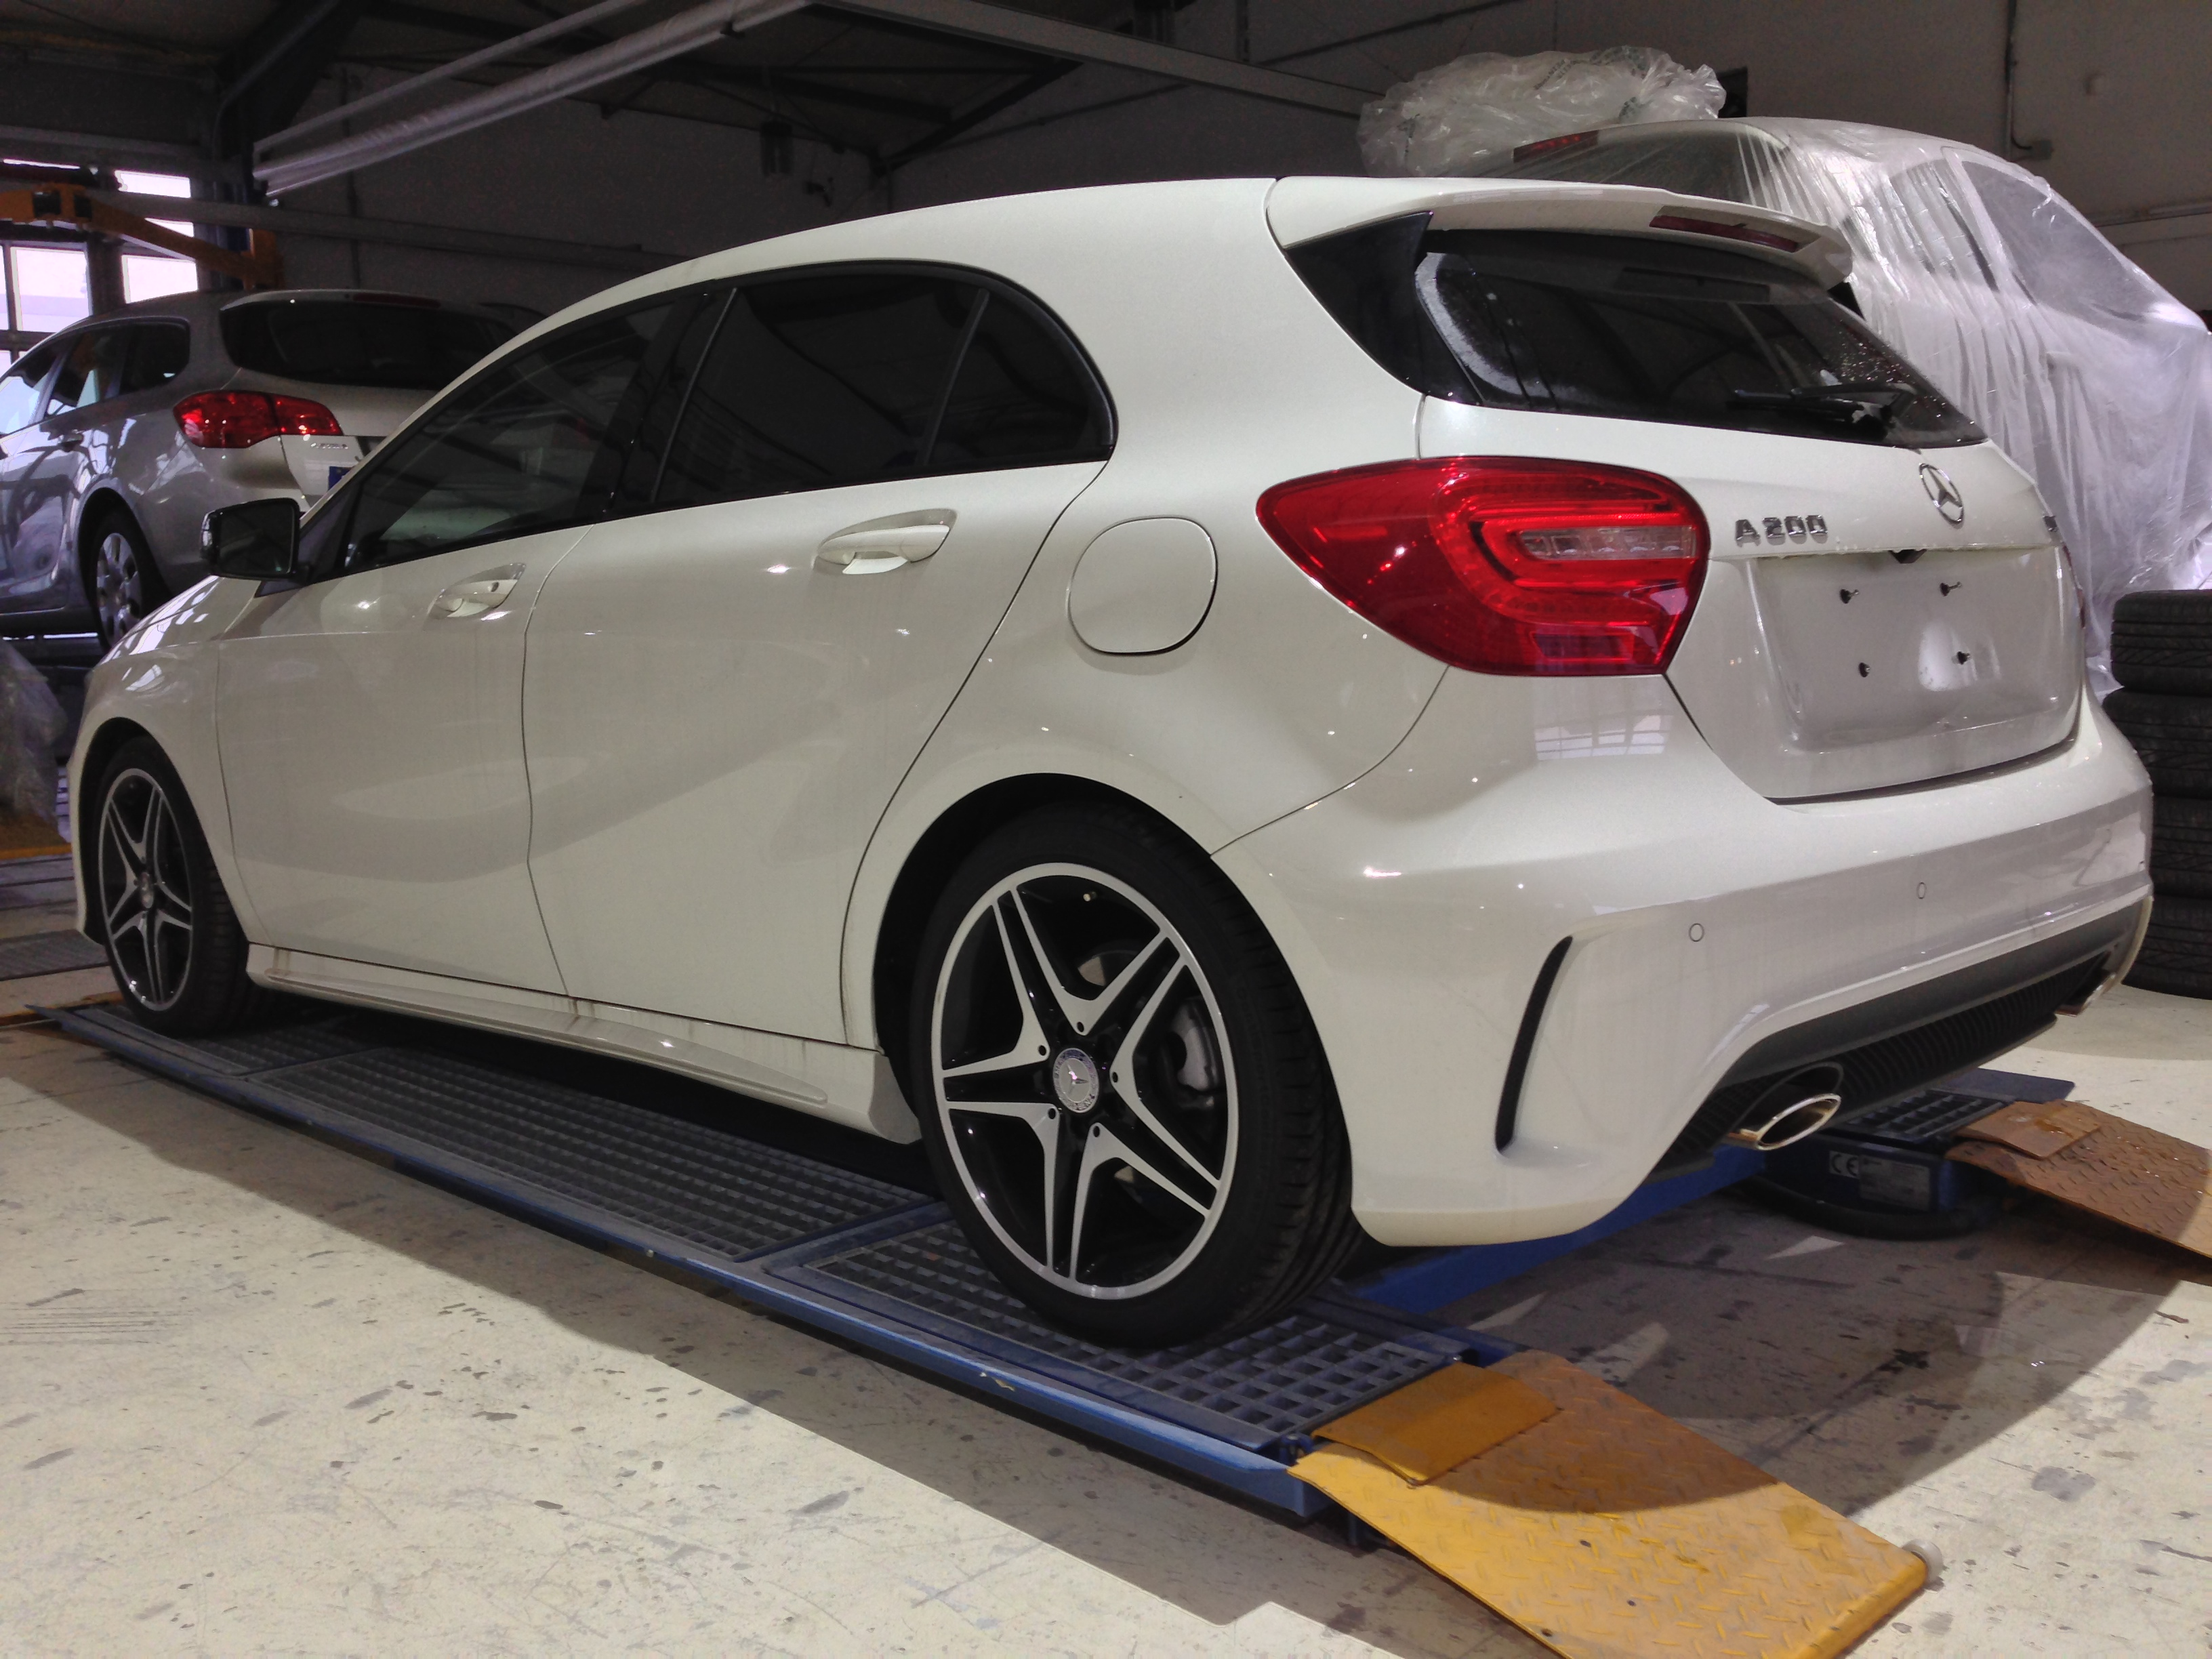 mercedes a klasse w 176 amg finish tuning karosserie. Black Bedroom Furniture Sets. Home Design Ideas